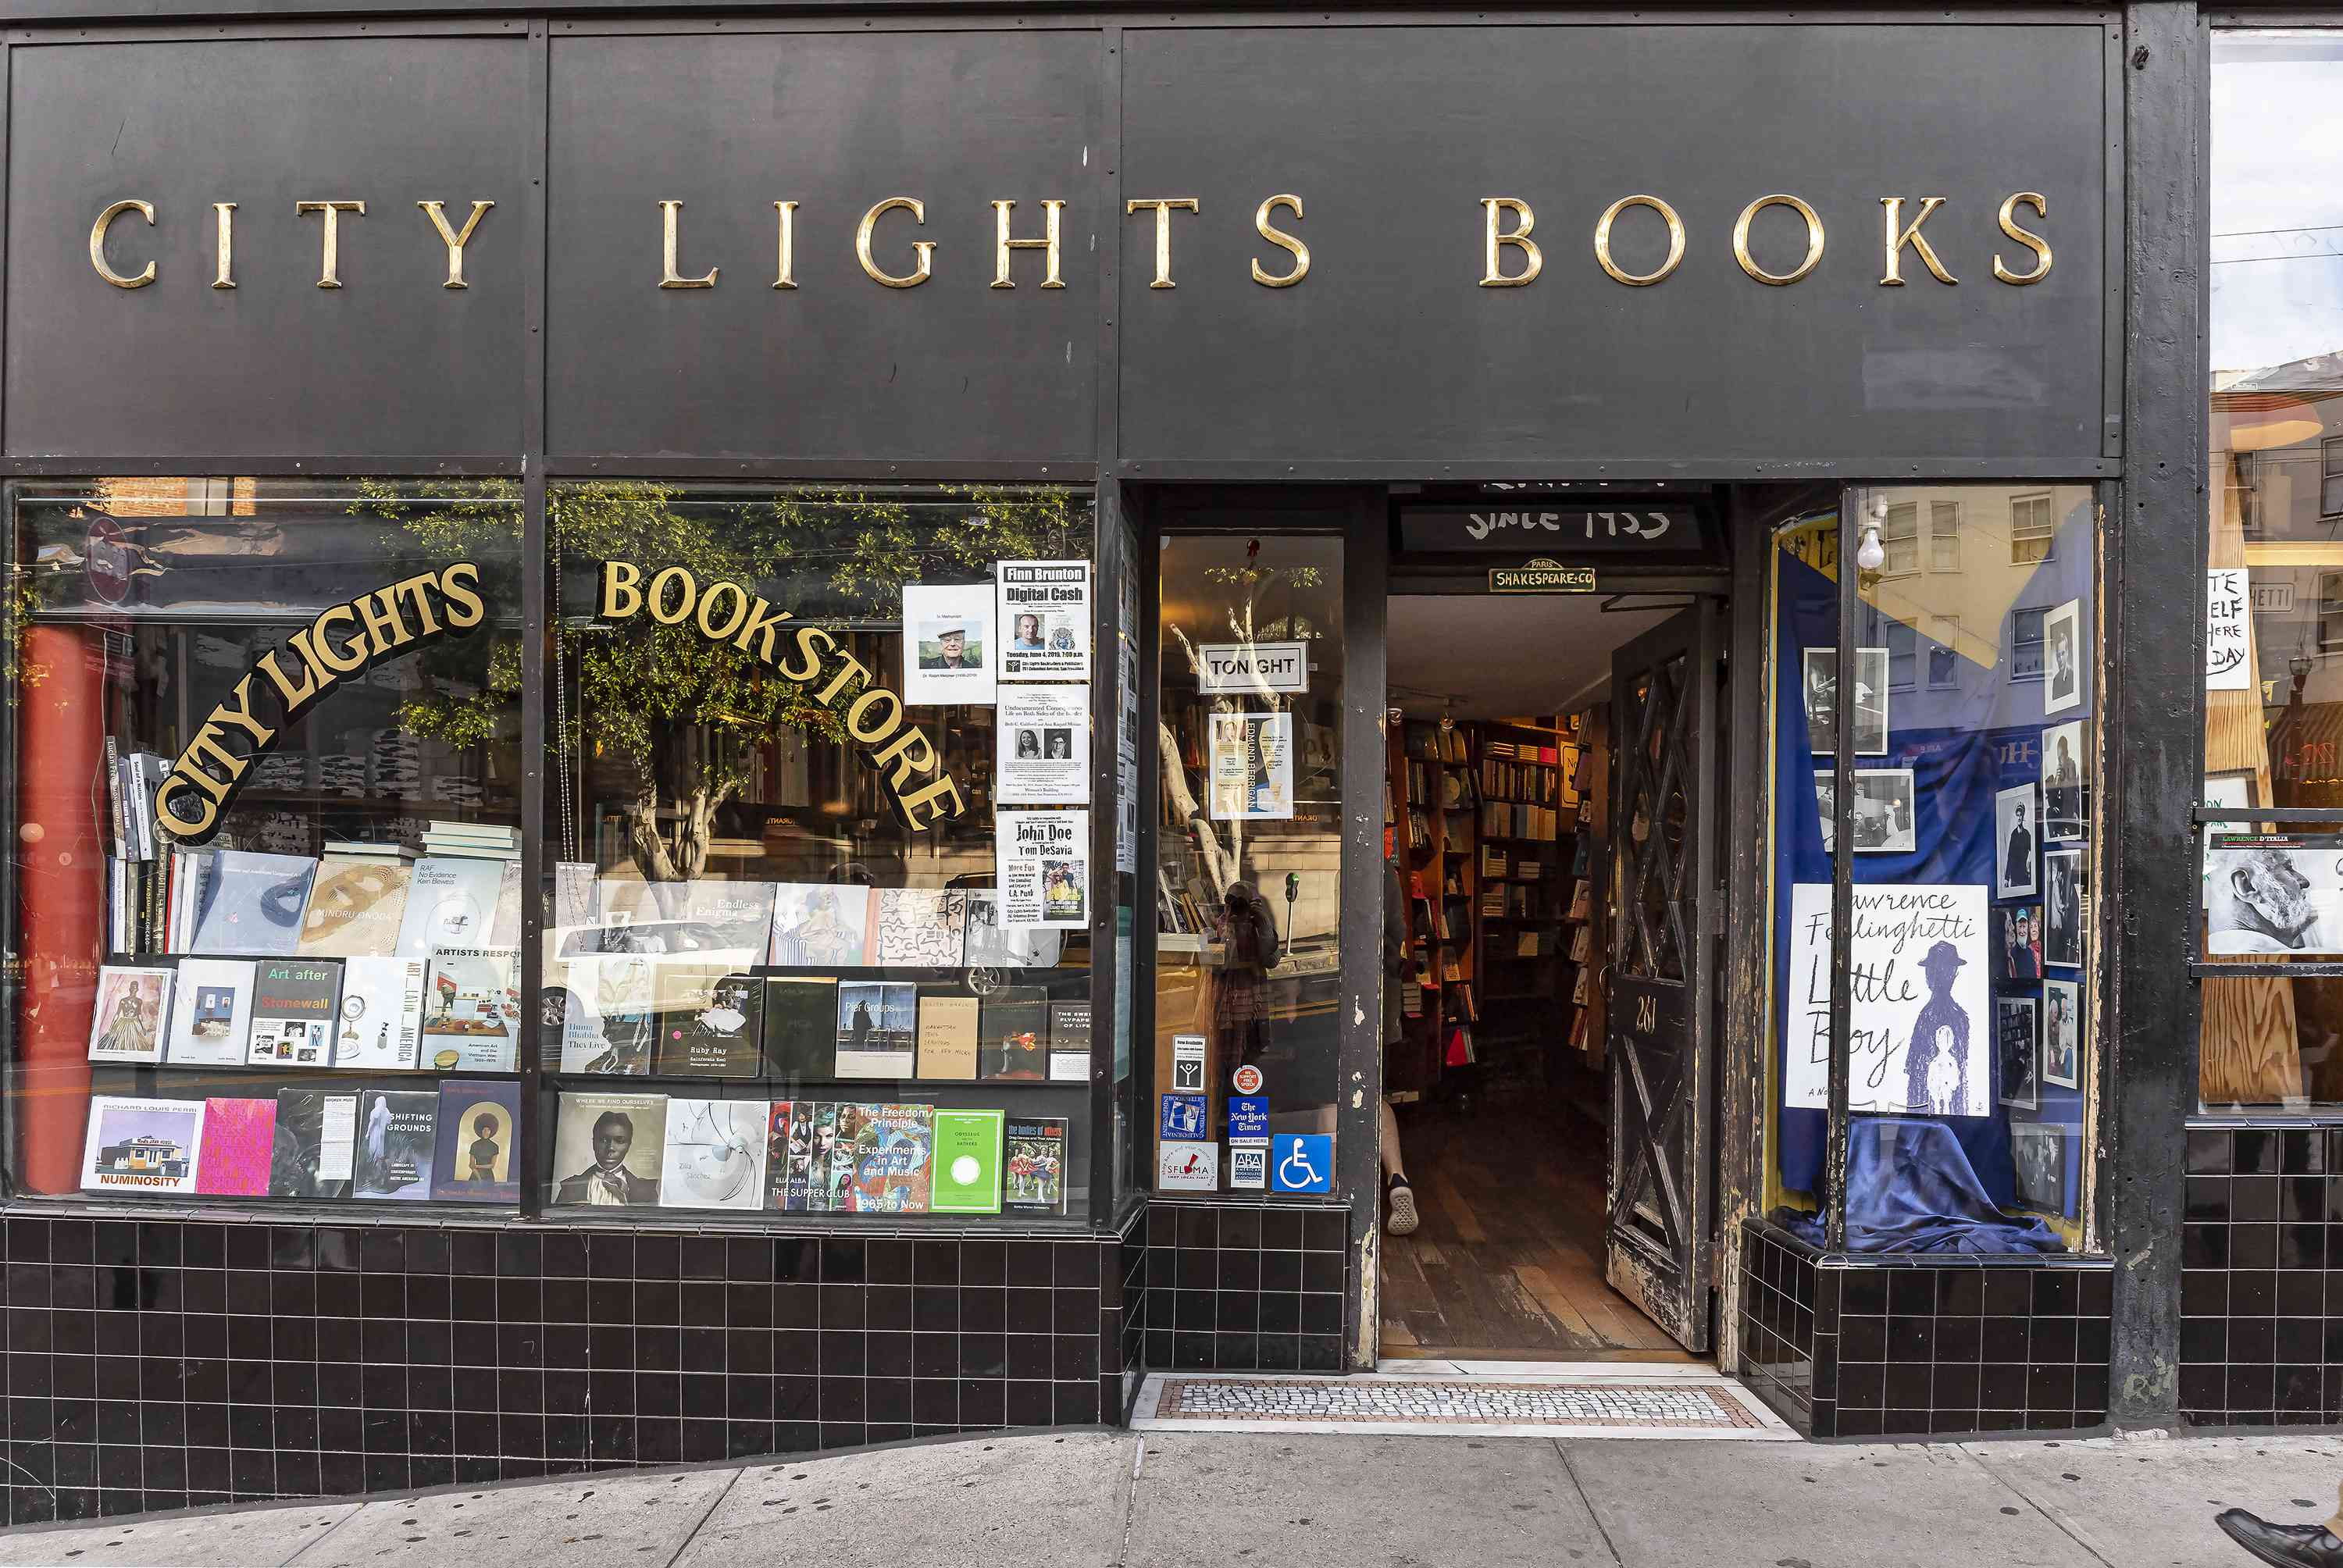 The entrance of City Lights Books